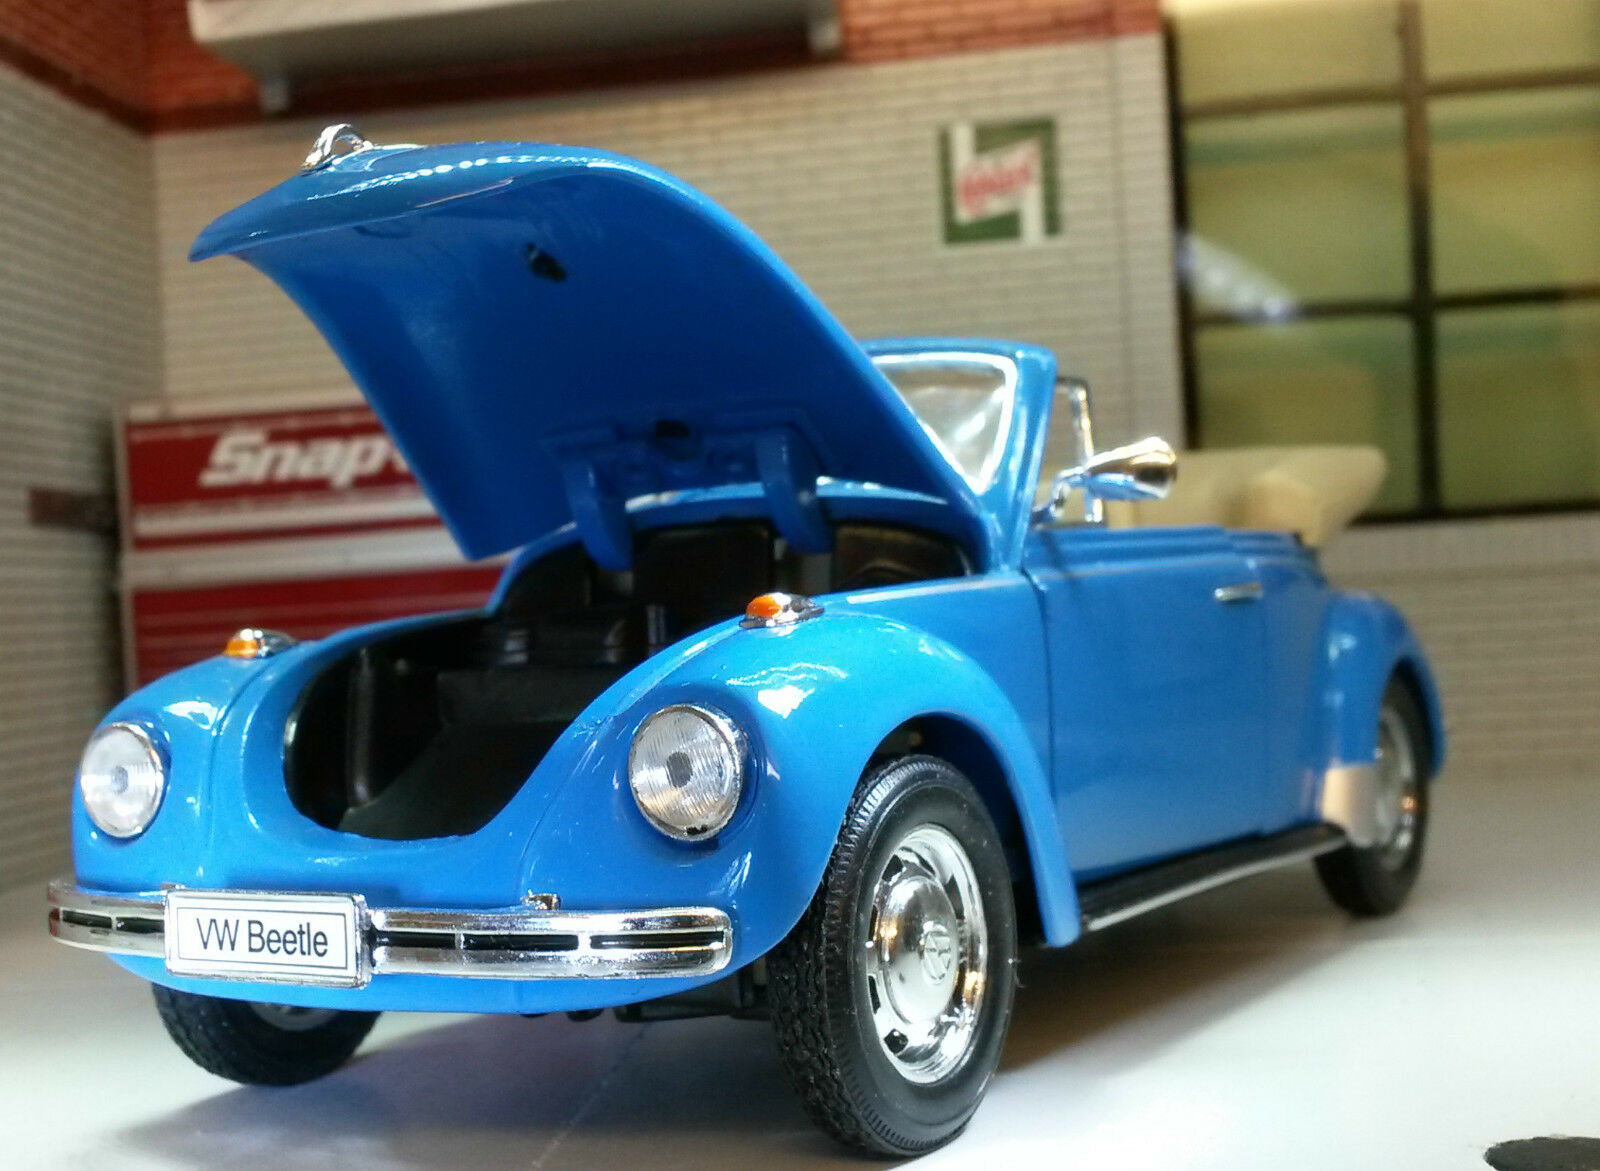 VW Beetle Congreenible Cabriolet 1302 1 24 Scale Welly Diecast Detailed Model